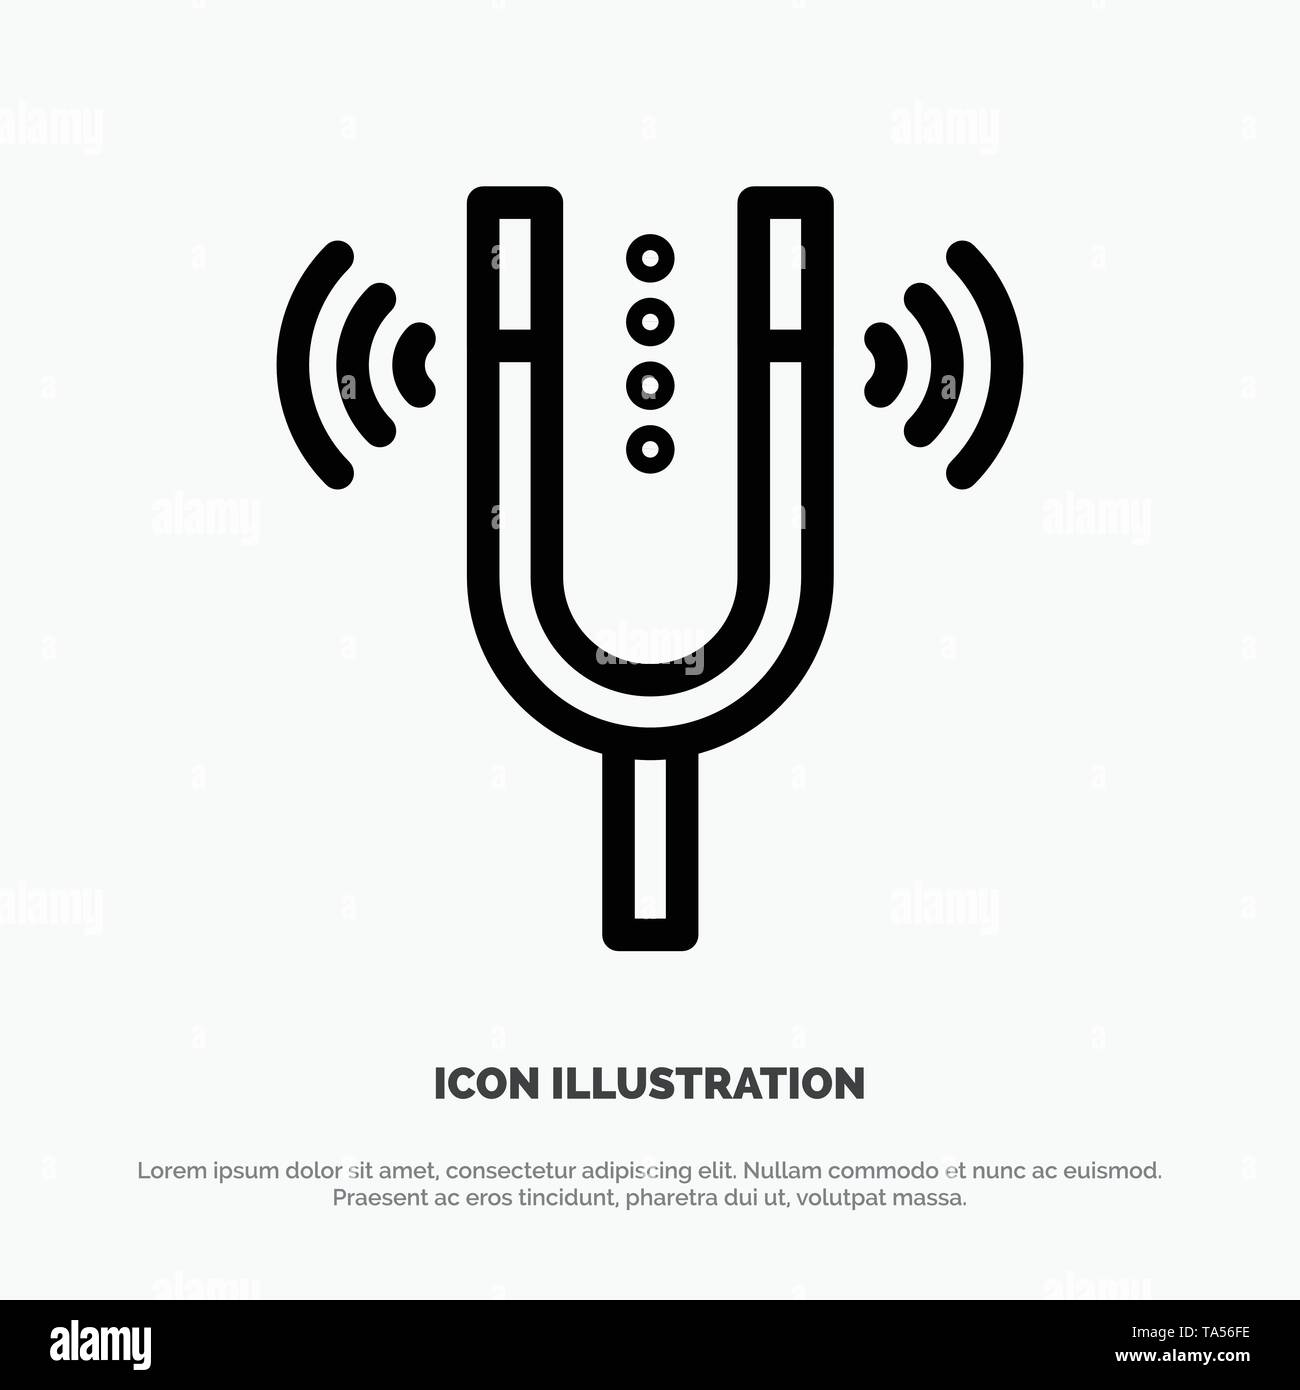 Concert, Fork, Cameron, Pitch, Reference Line Icon Vector - Stock Image